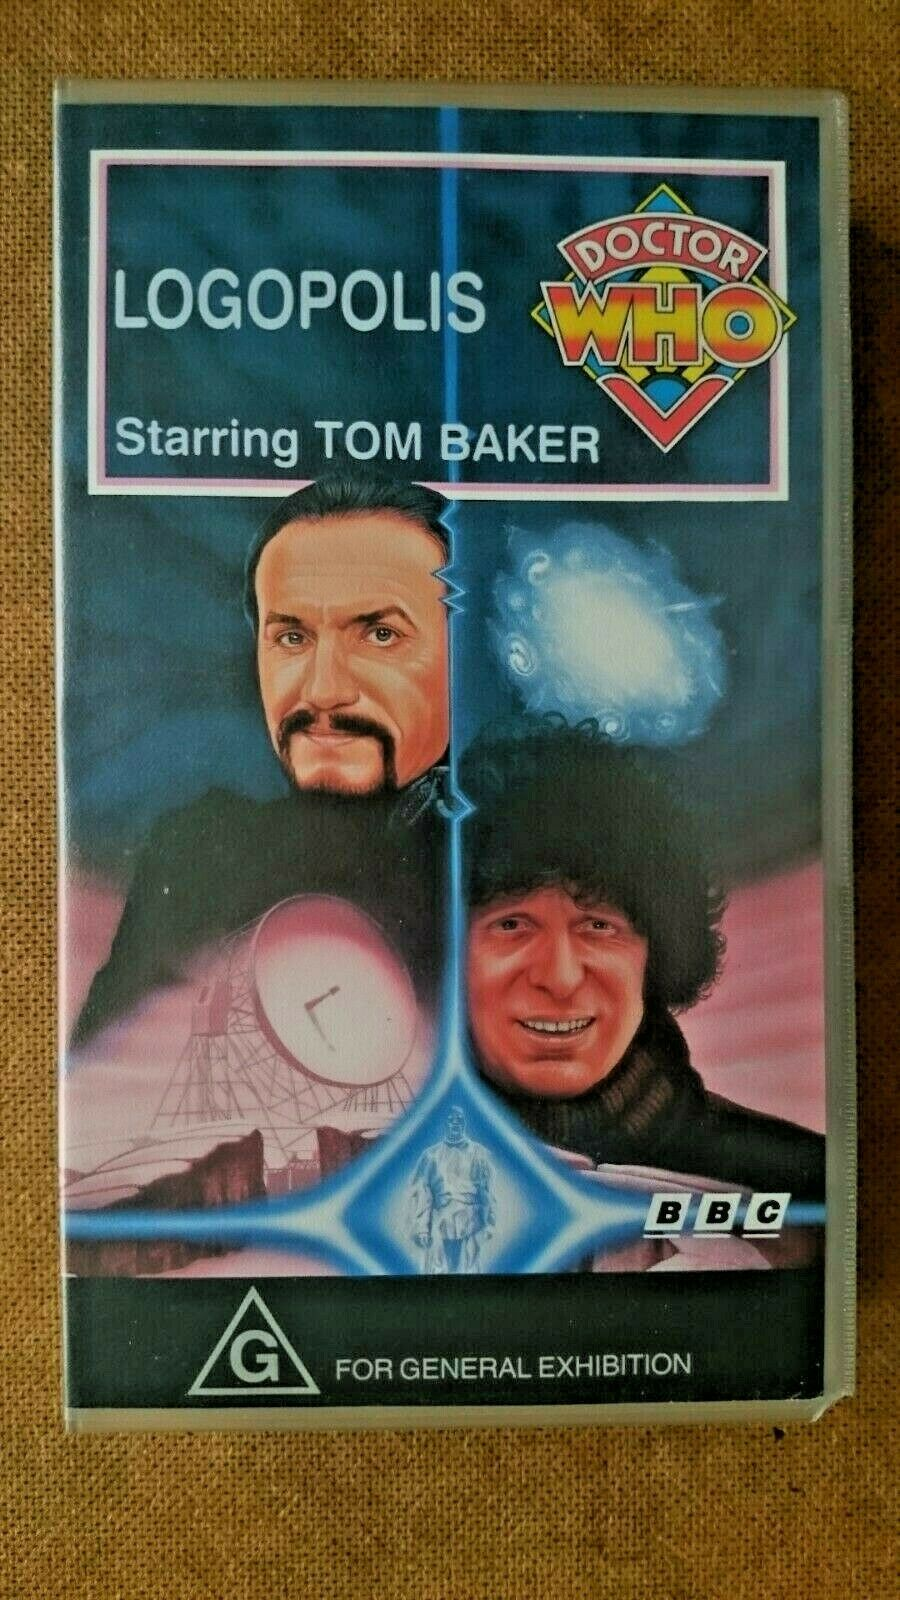 Doctor Who - Logopolis (VHS, 1992) - Australian Edition - Tom Baker